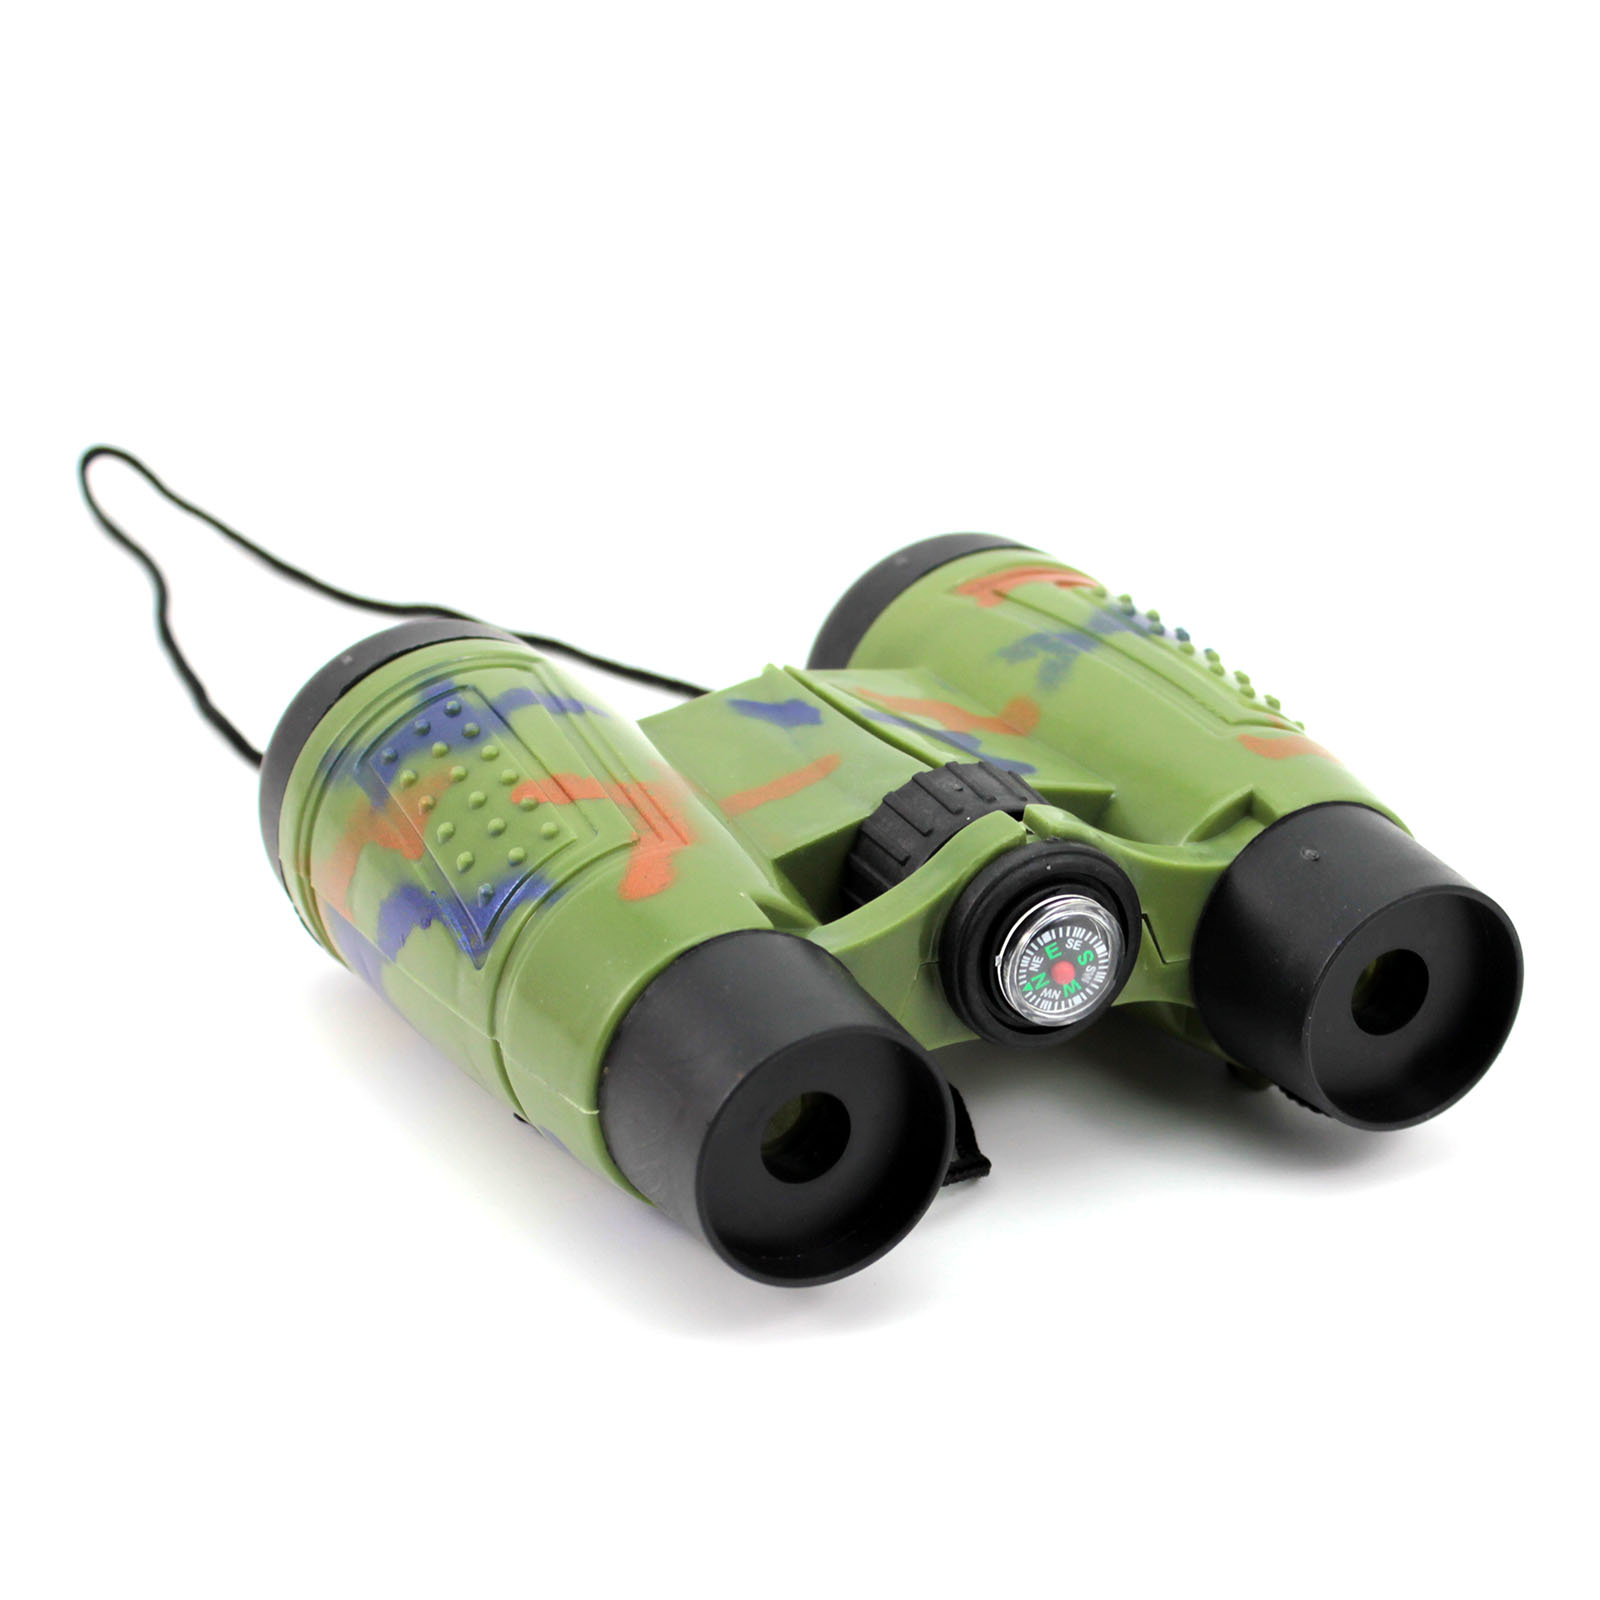 2016 Science Toys Telescope Camouflage Kid Toy Binocular Telescope Beach Camp Children Toys Magnification 4X